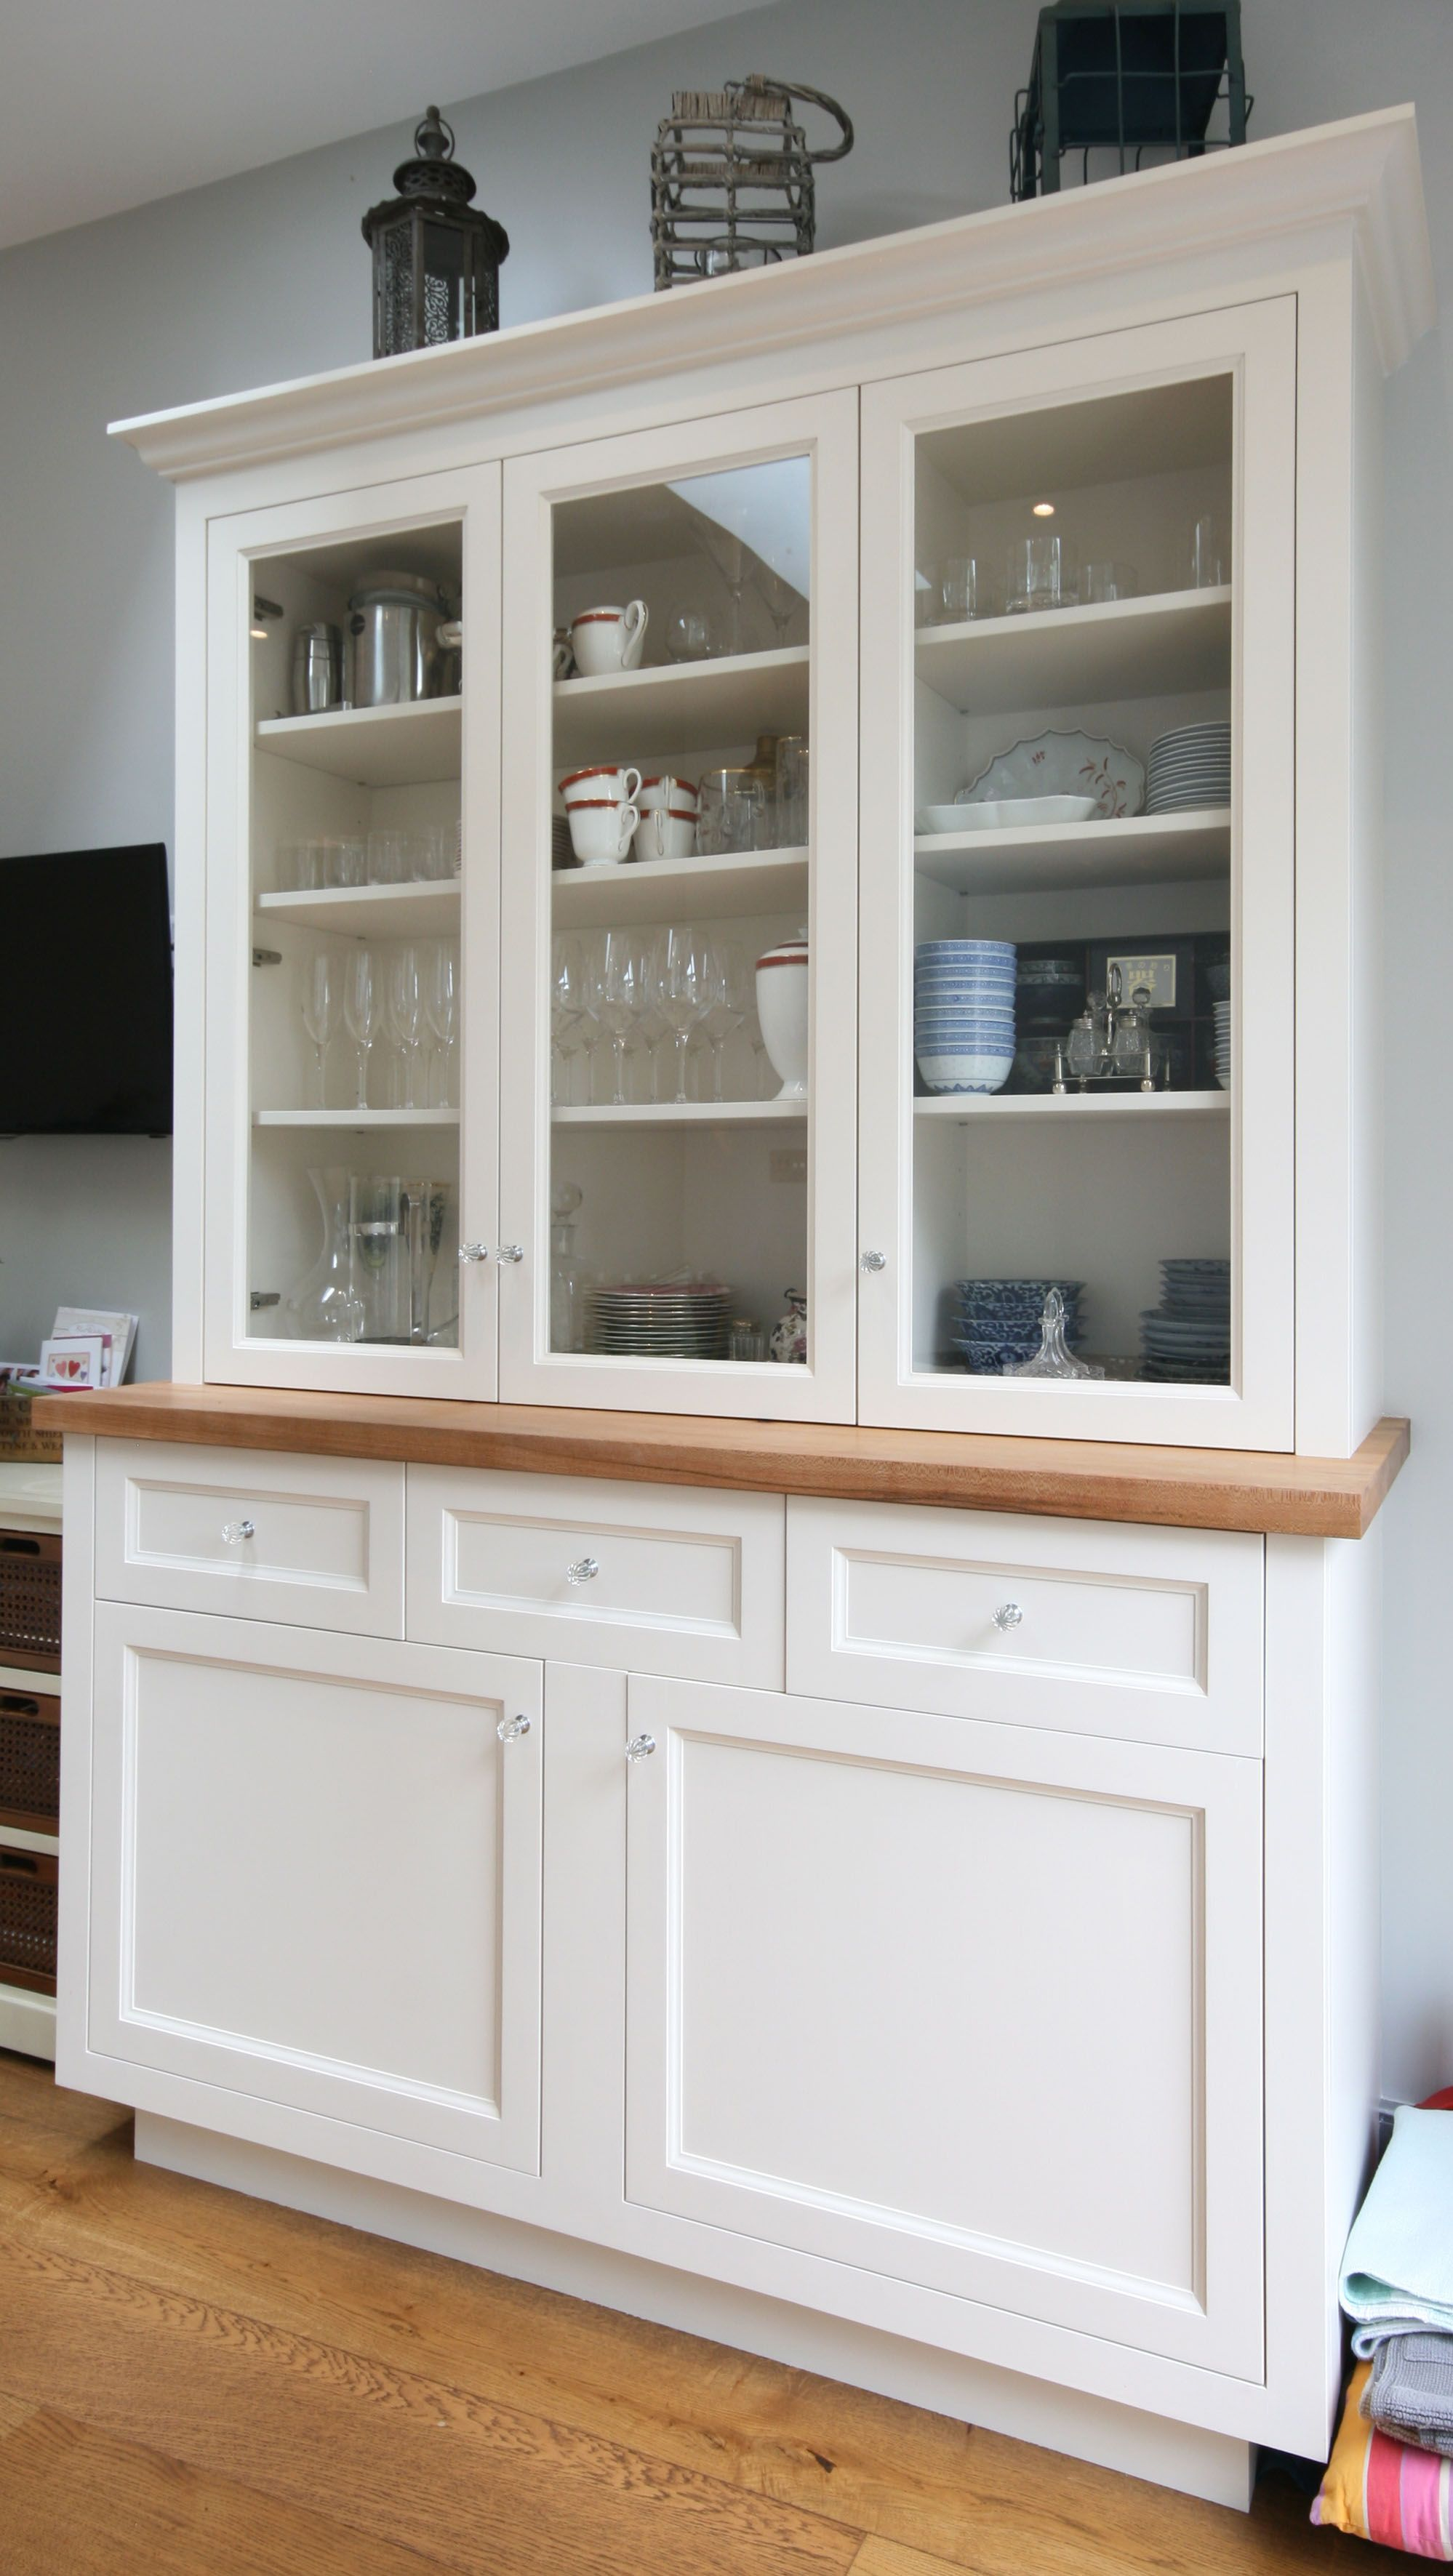 Kitchen Cabinet Made And Fitted With Glass Doors Above And Solid Panelled Doors And Drawers On The Lower Section Kitchencabi Cabinet Cabinet Doors Cabinetry